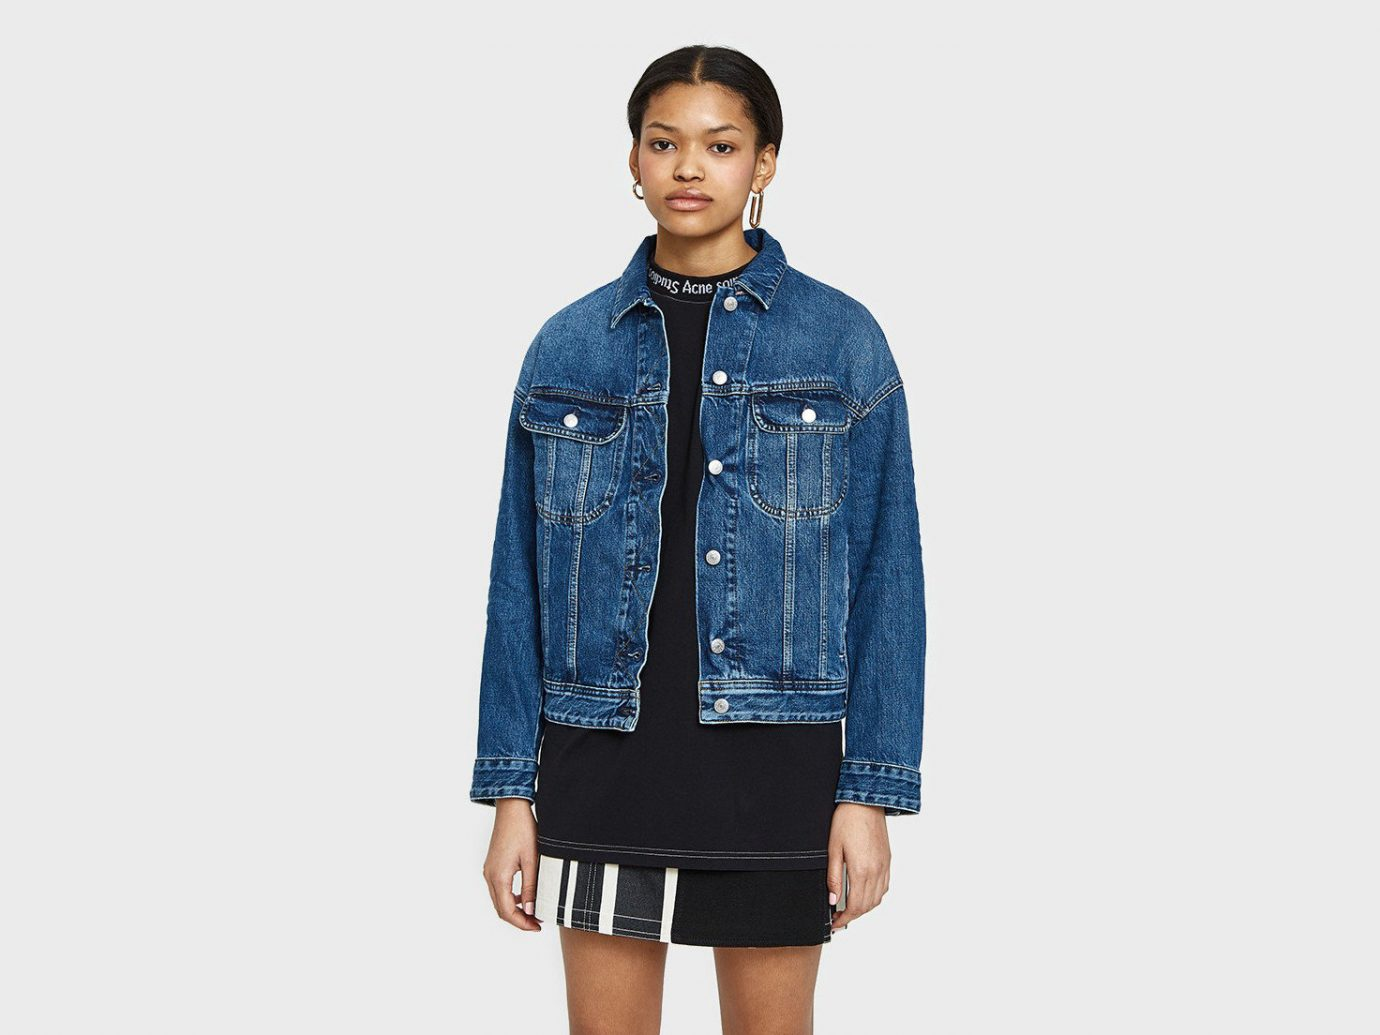 Style + Design Travel Shop person standing denim jacket wearing jeans fashion outerwear fashion model sleeve material posing electric blue dressed